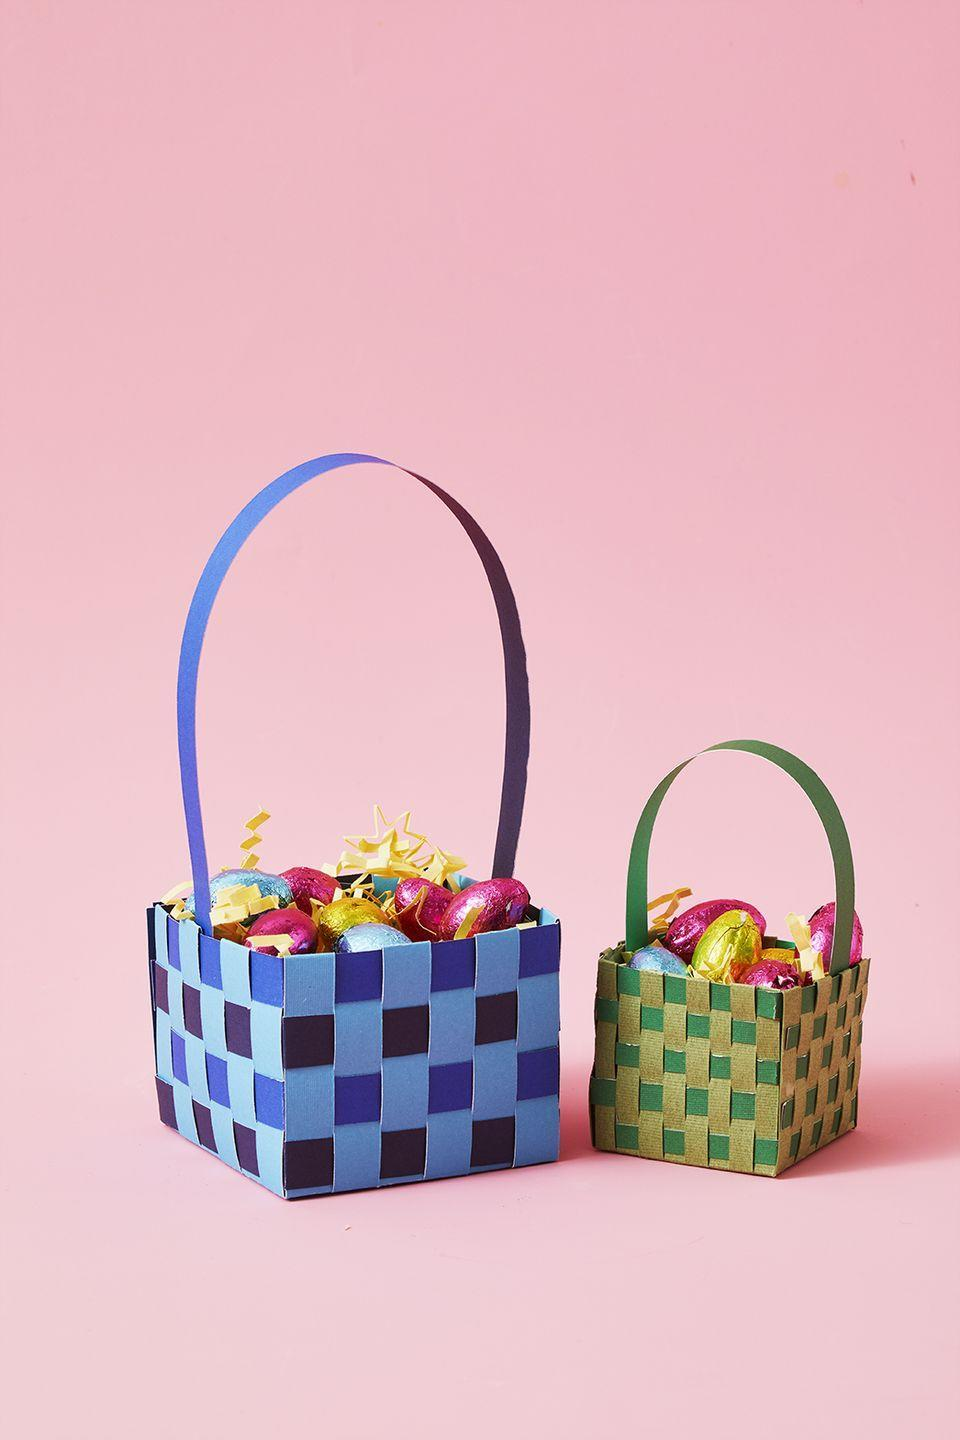 """<p>Starting completely from scratch? Grab up to three shades of sturdy colored paper and weave a 4"""" x 4"""" basket. </p><p><em><a href=""""https://www.goodhousekeeping.com/holidays/easter-ideas/a31116749/diy-paper-easter-basket/"""" rel=""""nofollow noopener"""" target=""""_blank"""" data-ylk=""""slk:Get the tutorial »"""" class=""""link rapid-noclick-resp"""">Get the tutorial » </a></em></p>"""